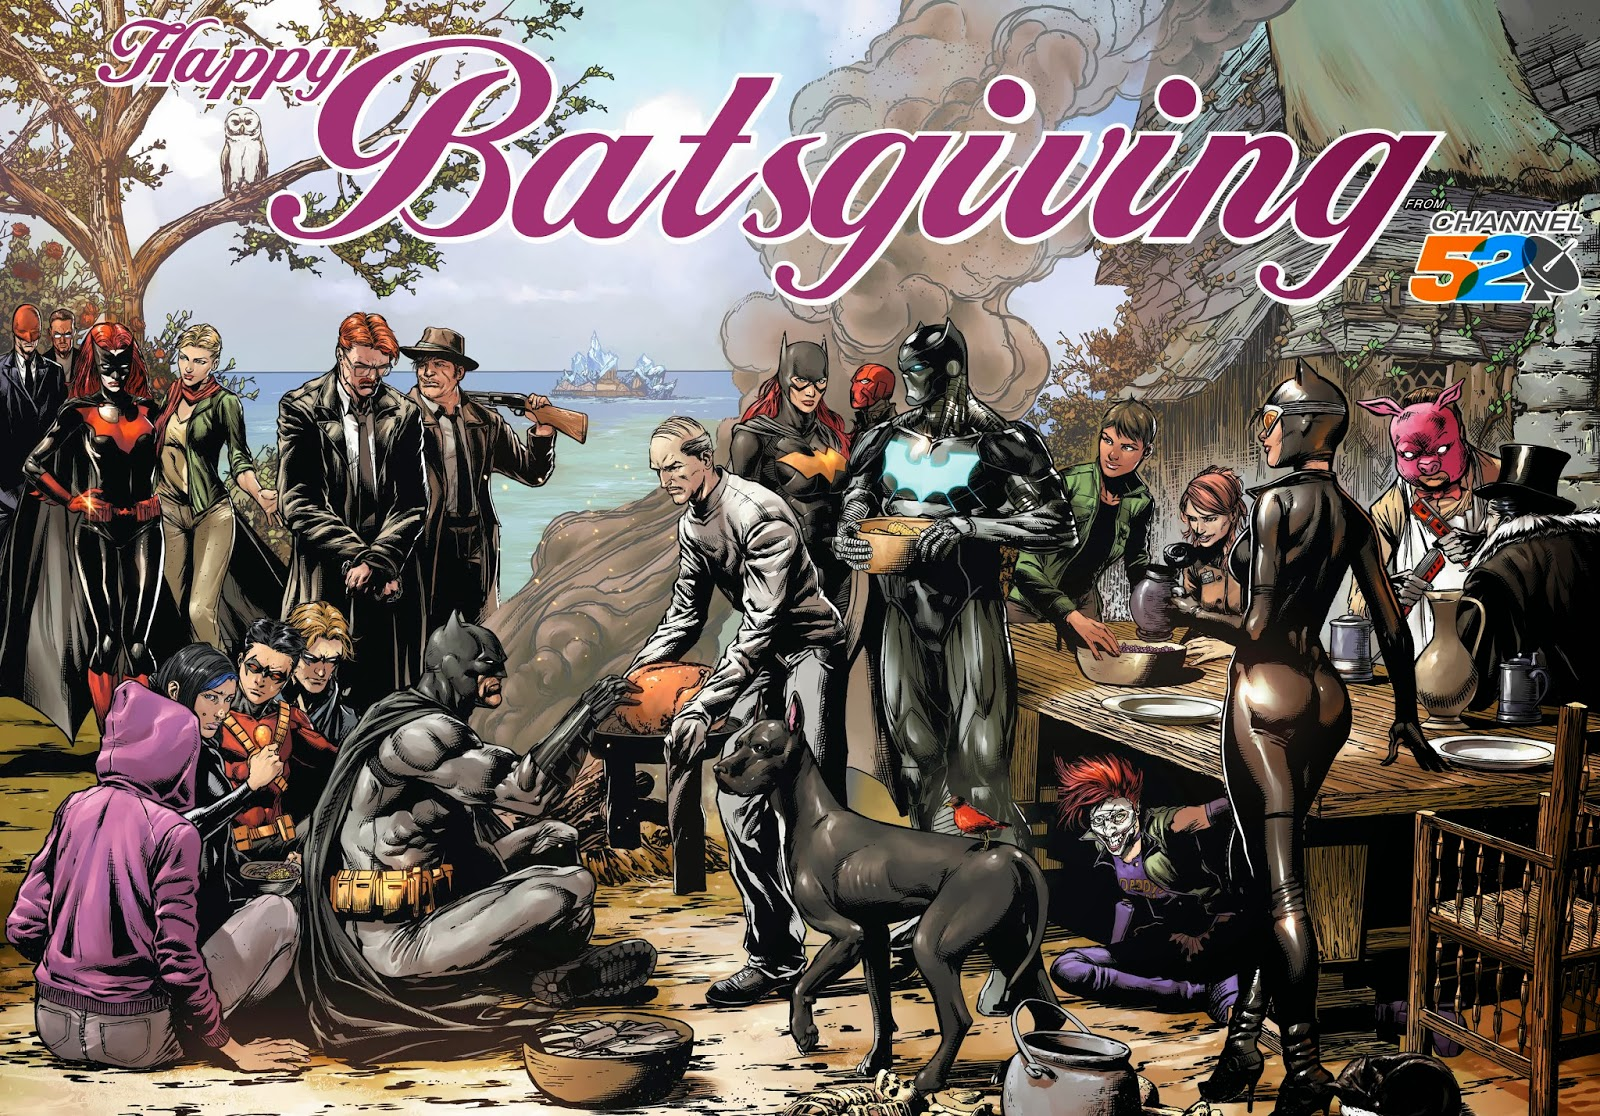 A Batman Thanksgiving